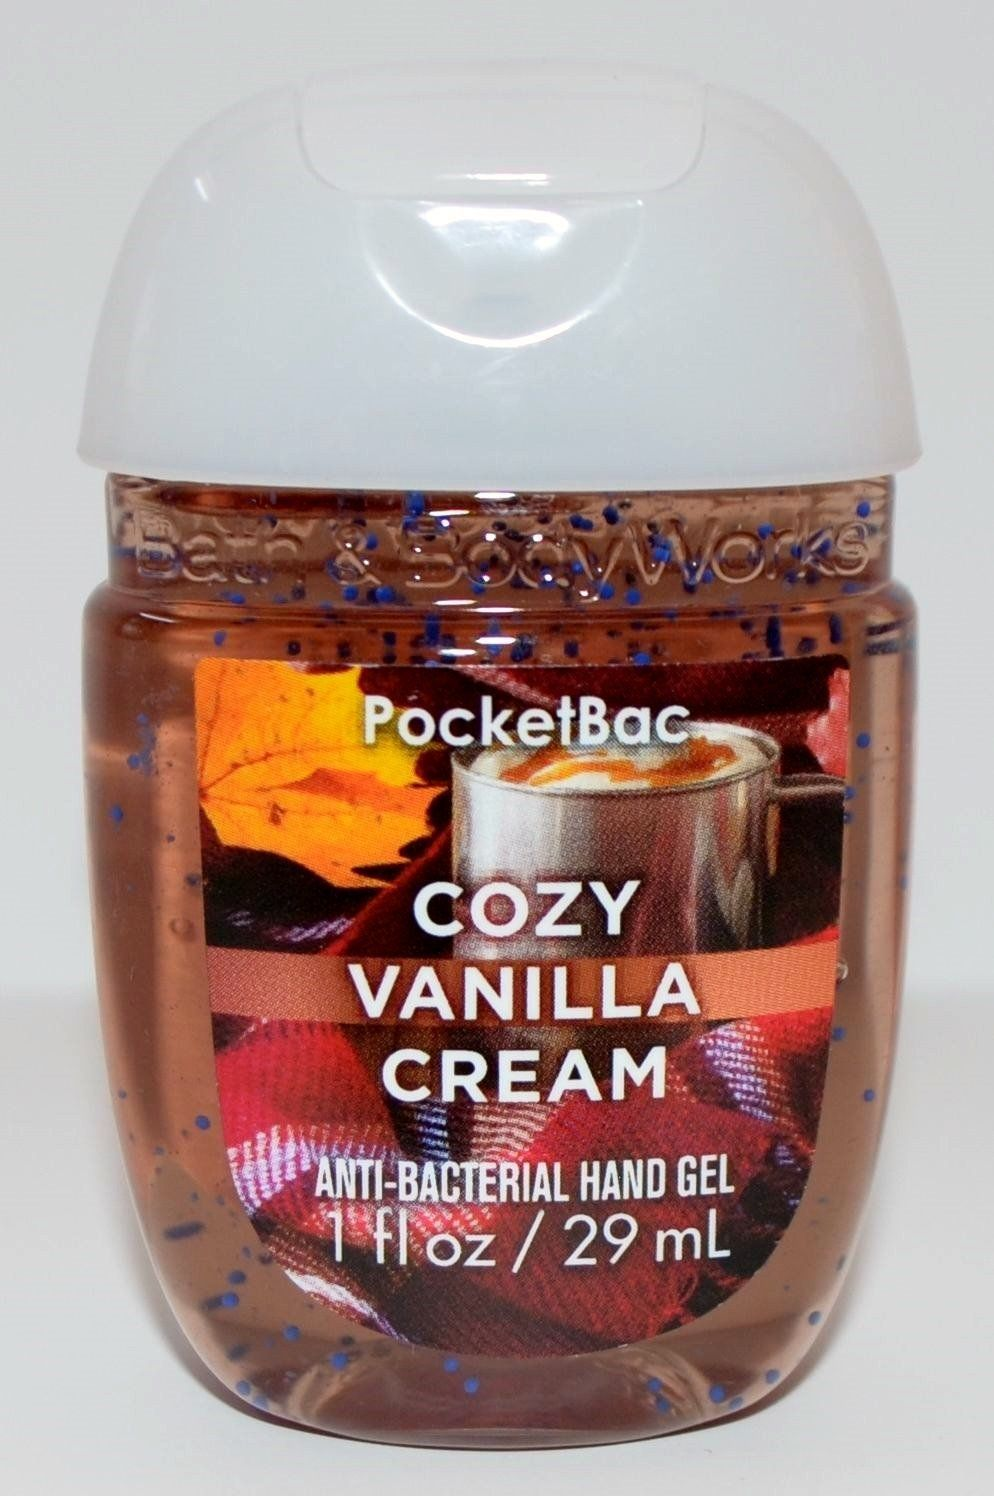 Bath And Body Works Pocketbac Hand Sanitizer Gel Cozy Vanilla